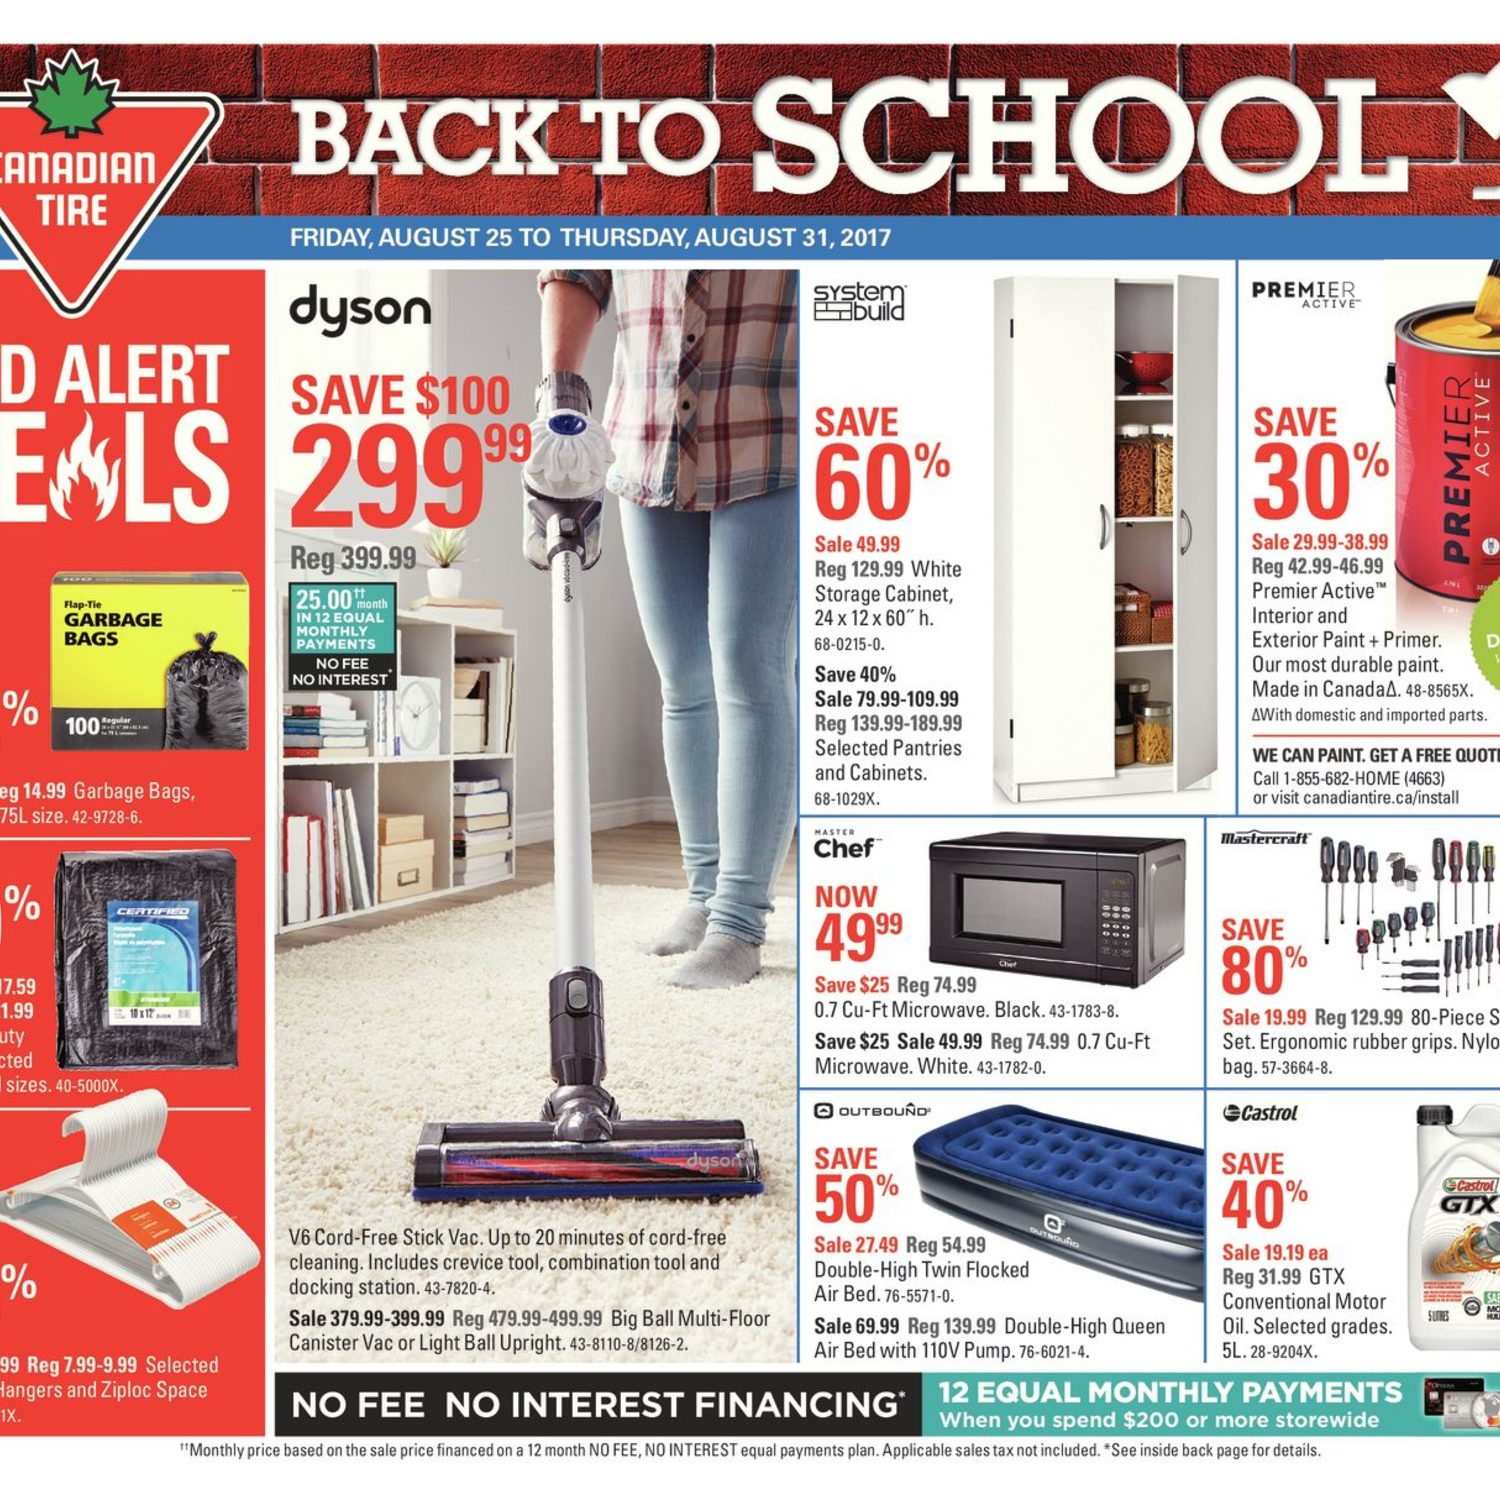 Canadian Tire Weekly Flyer Back To School Aug 25 31 Redflagdeals